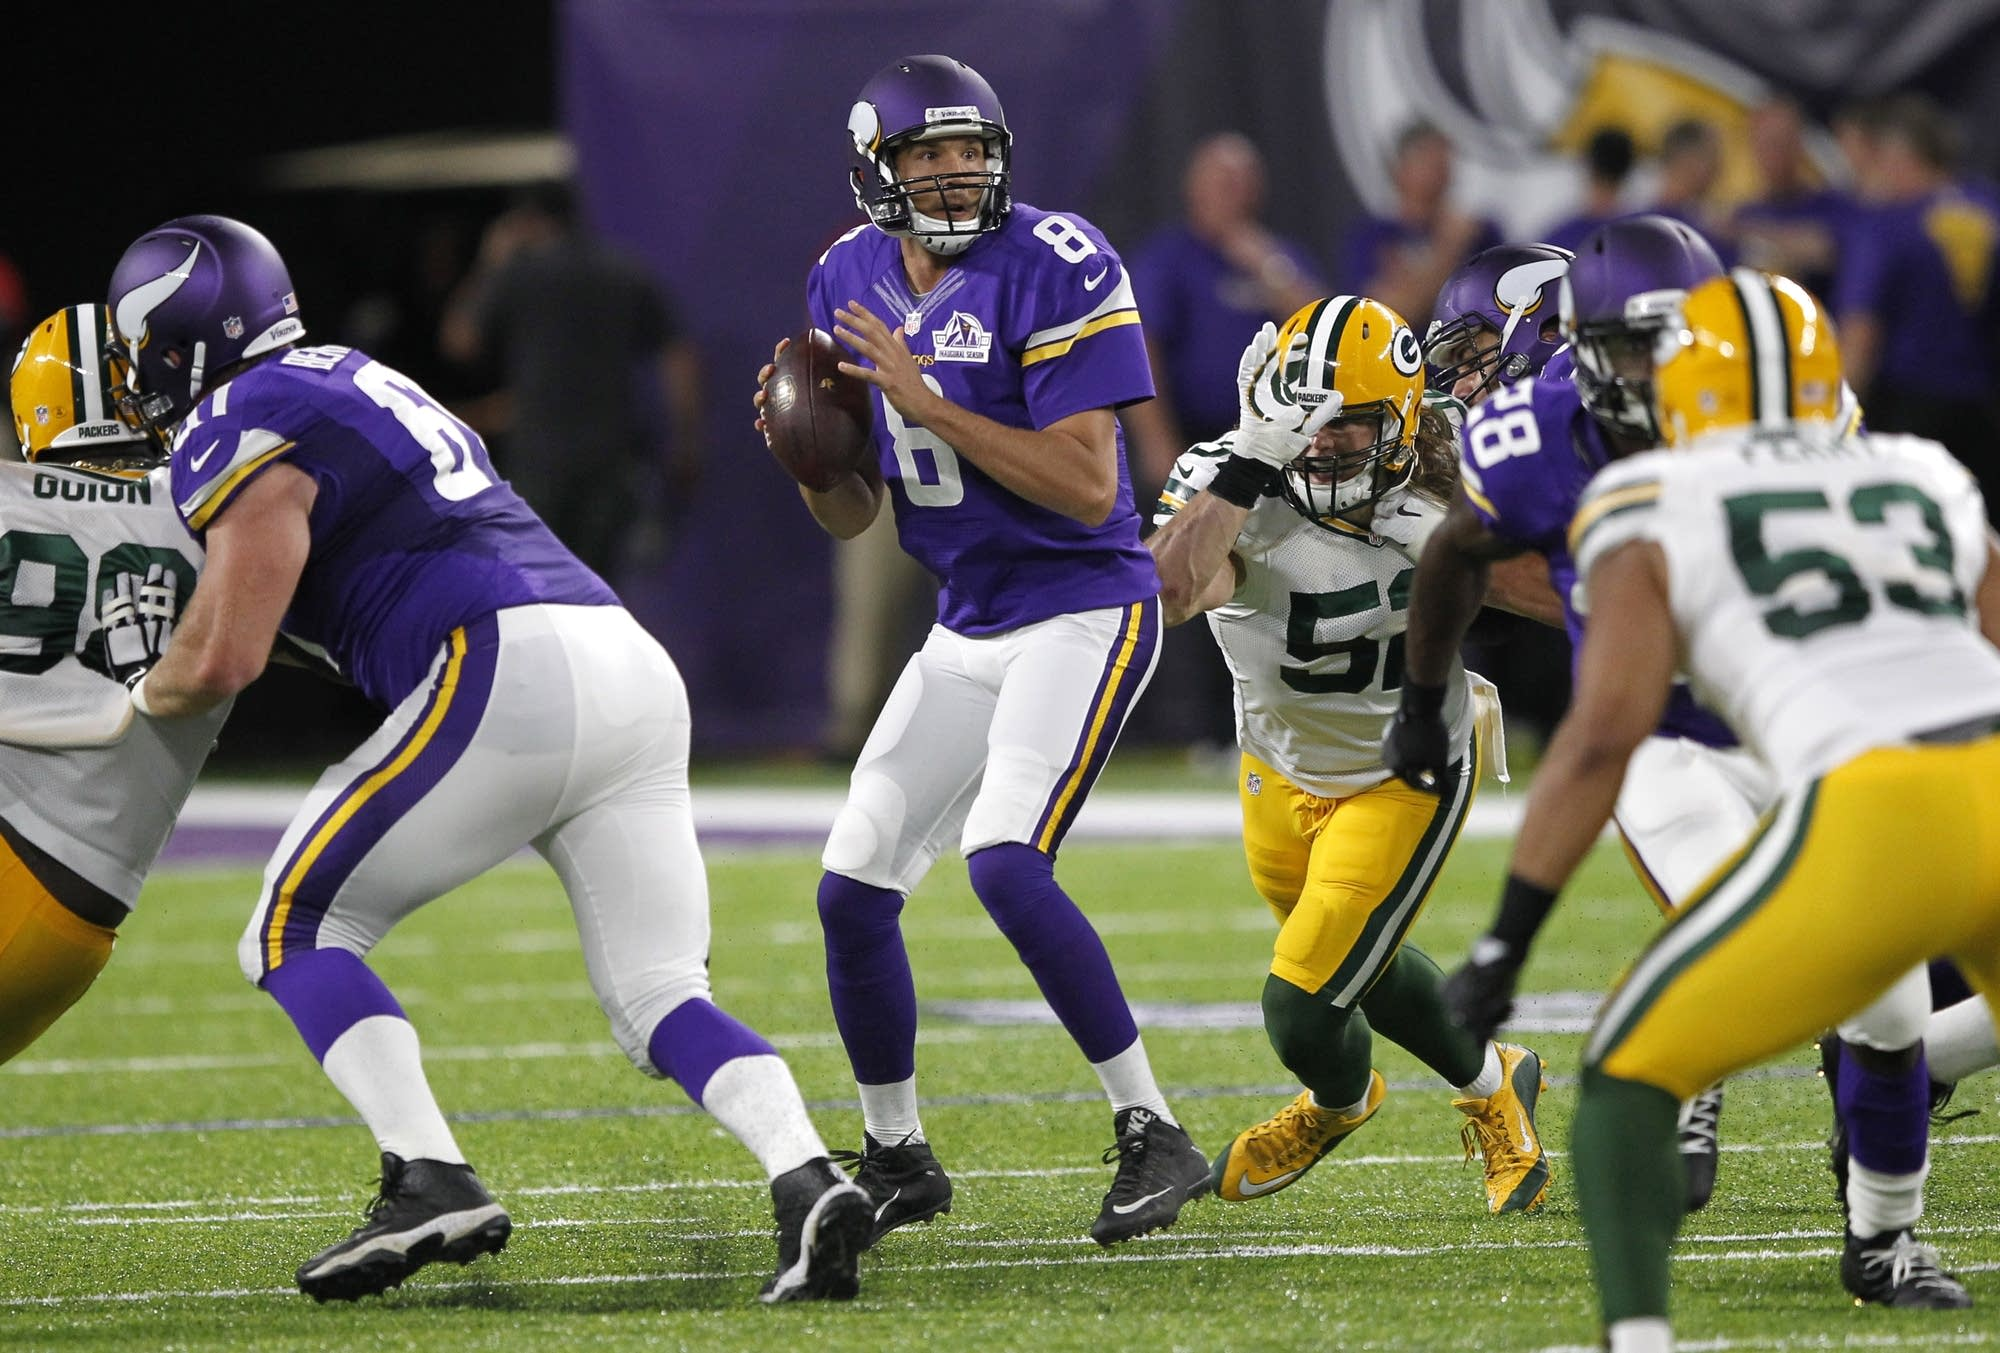 Bradford trumps Rodgers in debut as Vikes beat Pack 17-14  ced2a982f